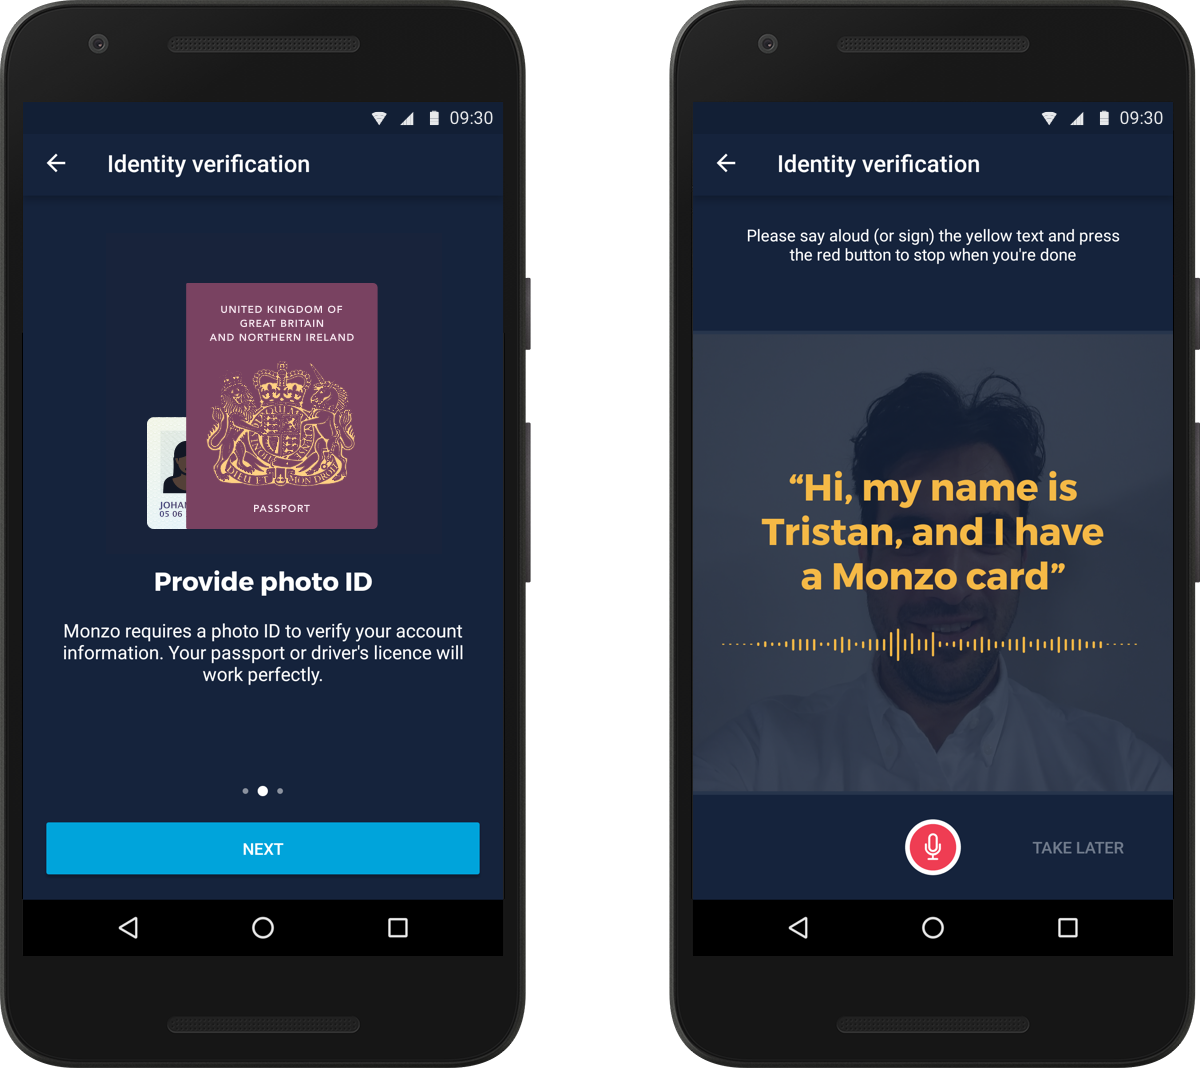 New Monzo Update: Identity Verification on Android